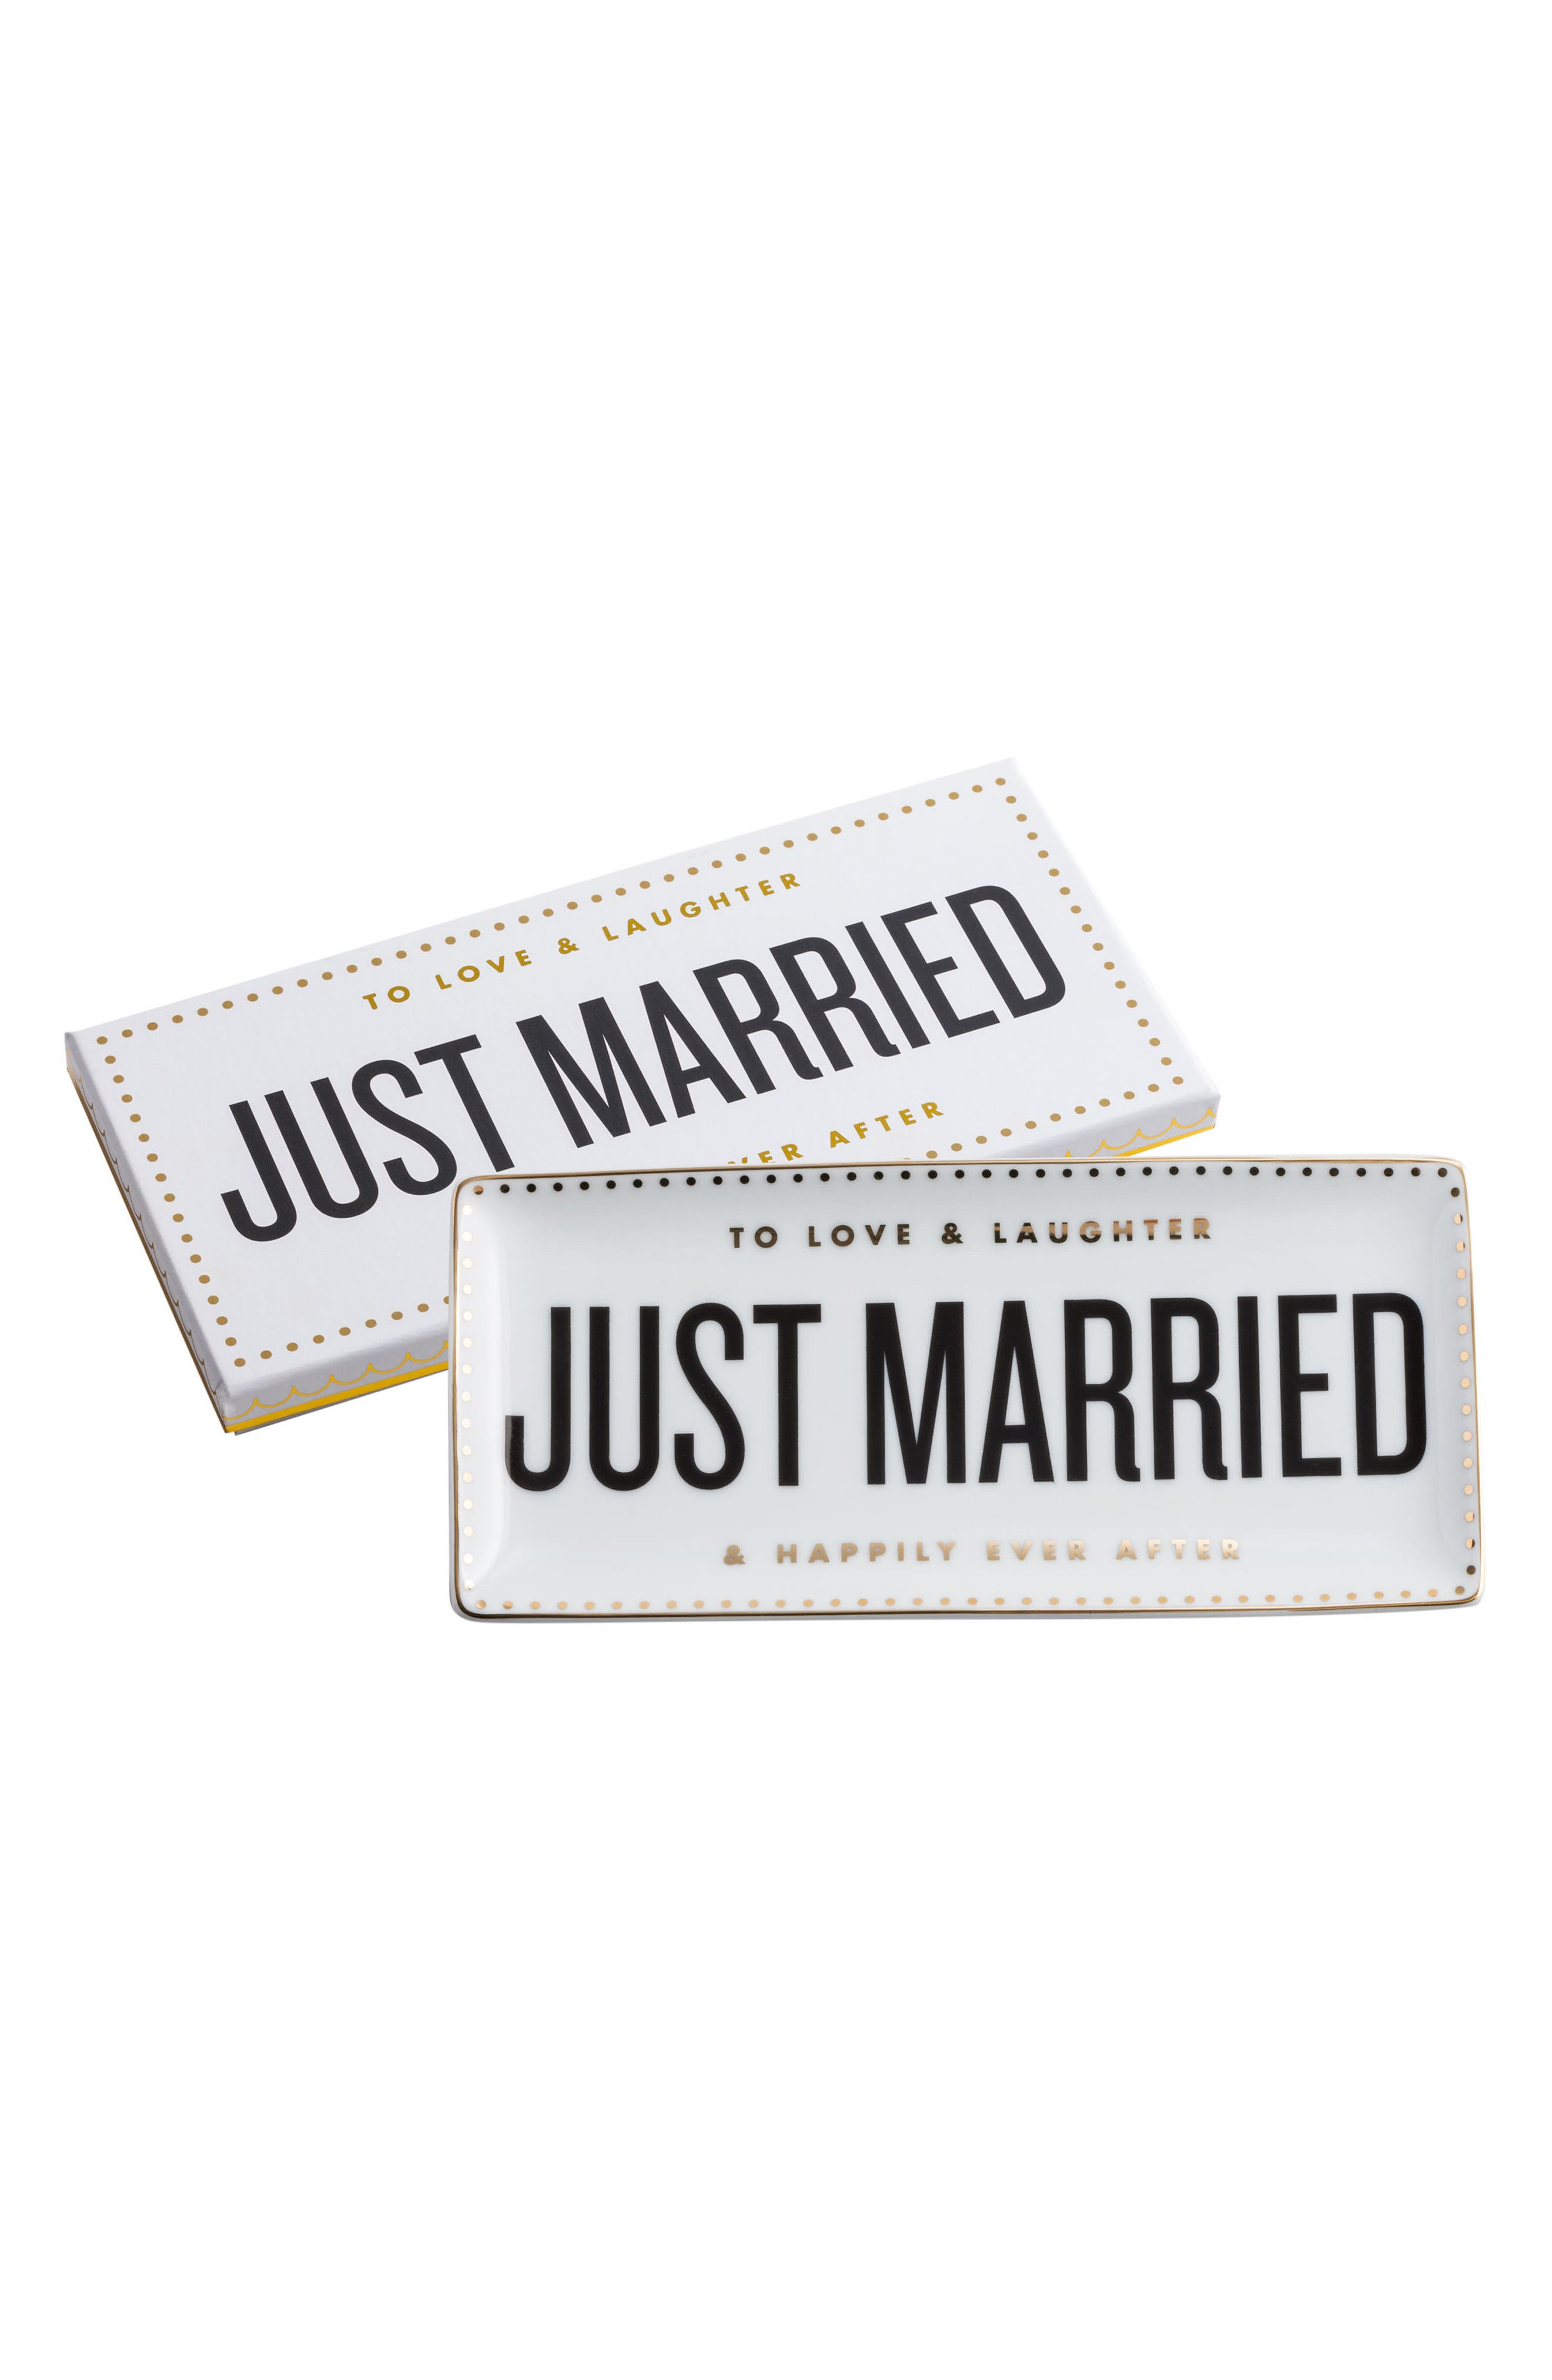 Just Married Porcelain Trinket Tray,                             Main thumbnail 1, color,                             White/ Black/ Gold